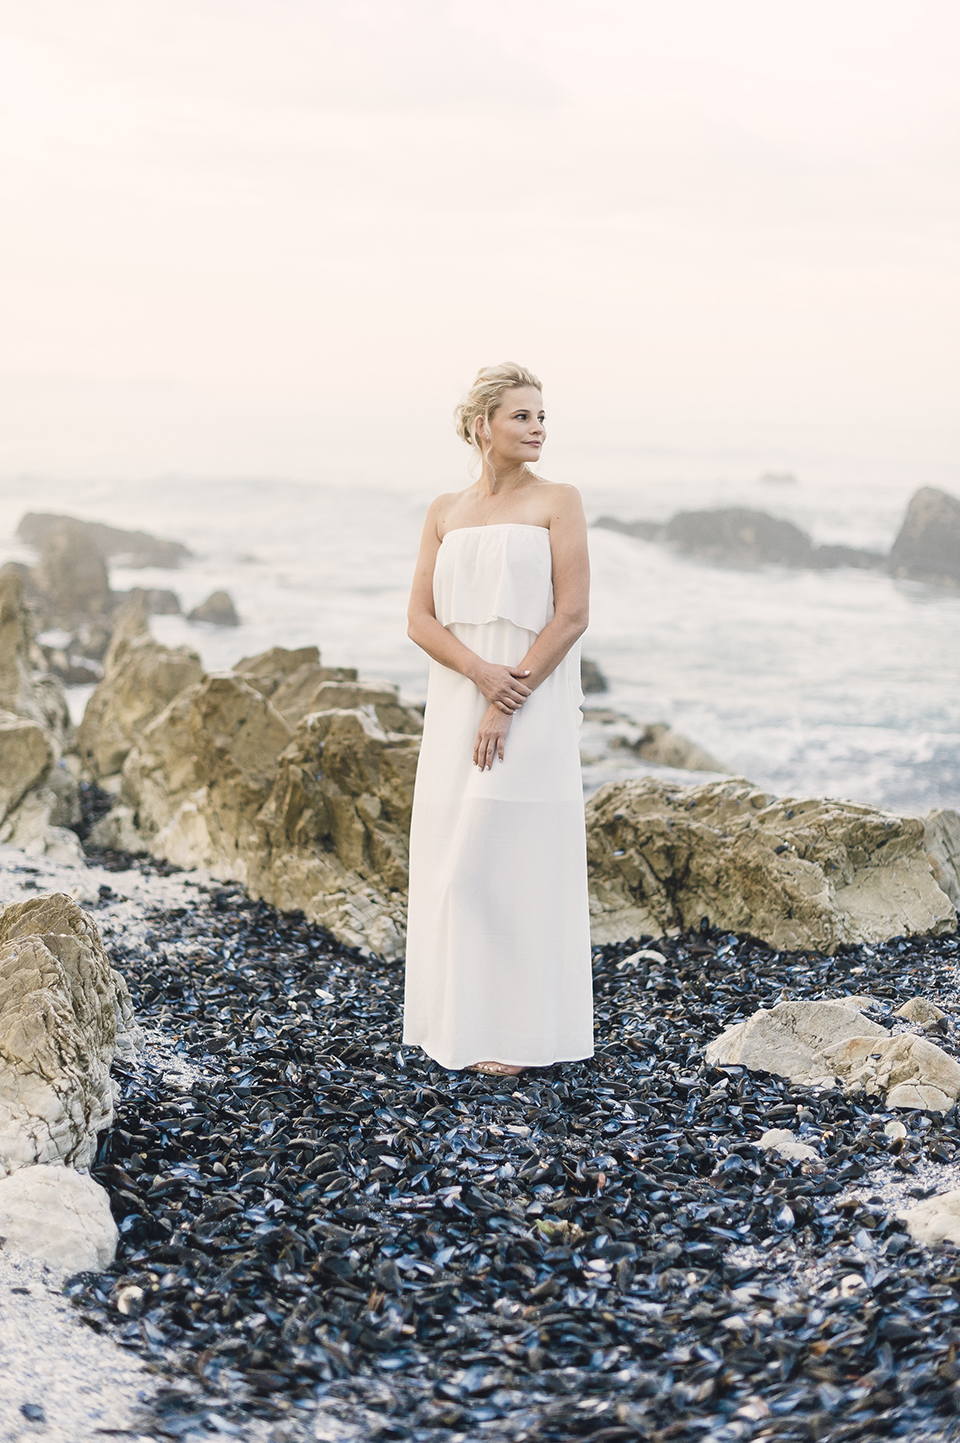 RyanParker_CapeTown_Photographer_Wedding_Hermanus_A&B_DSC_9145.jpg